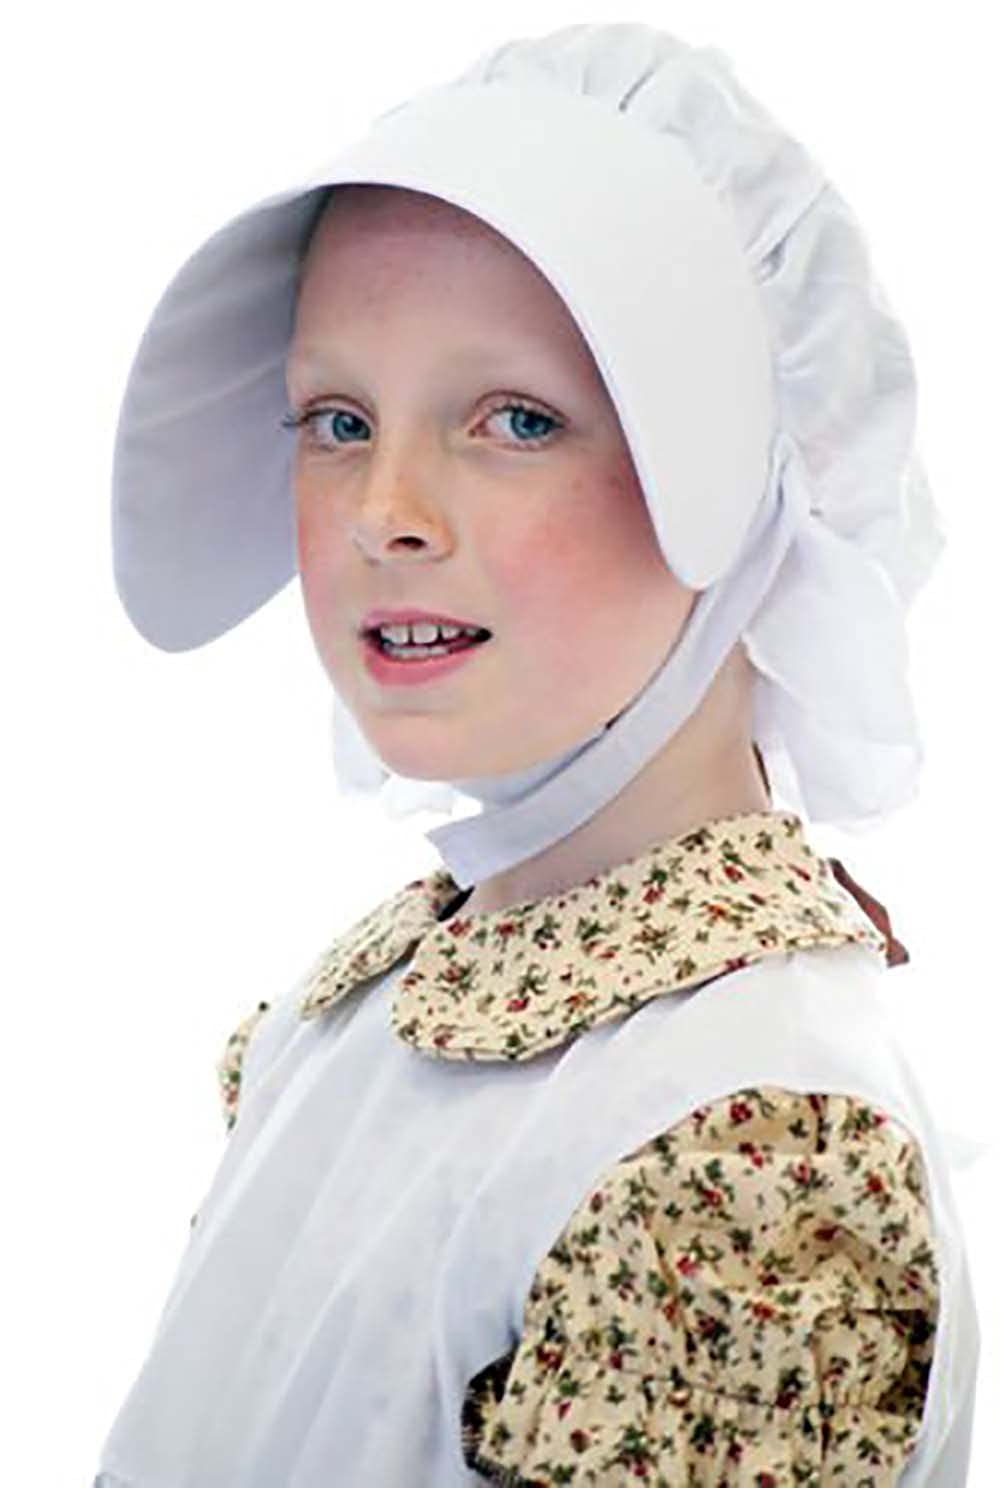 世界book day victorian edwardian servant girl fancy dress school再生